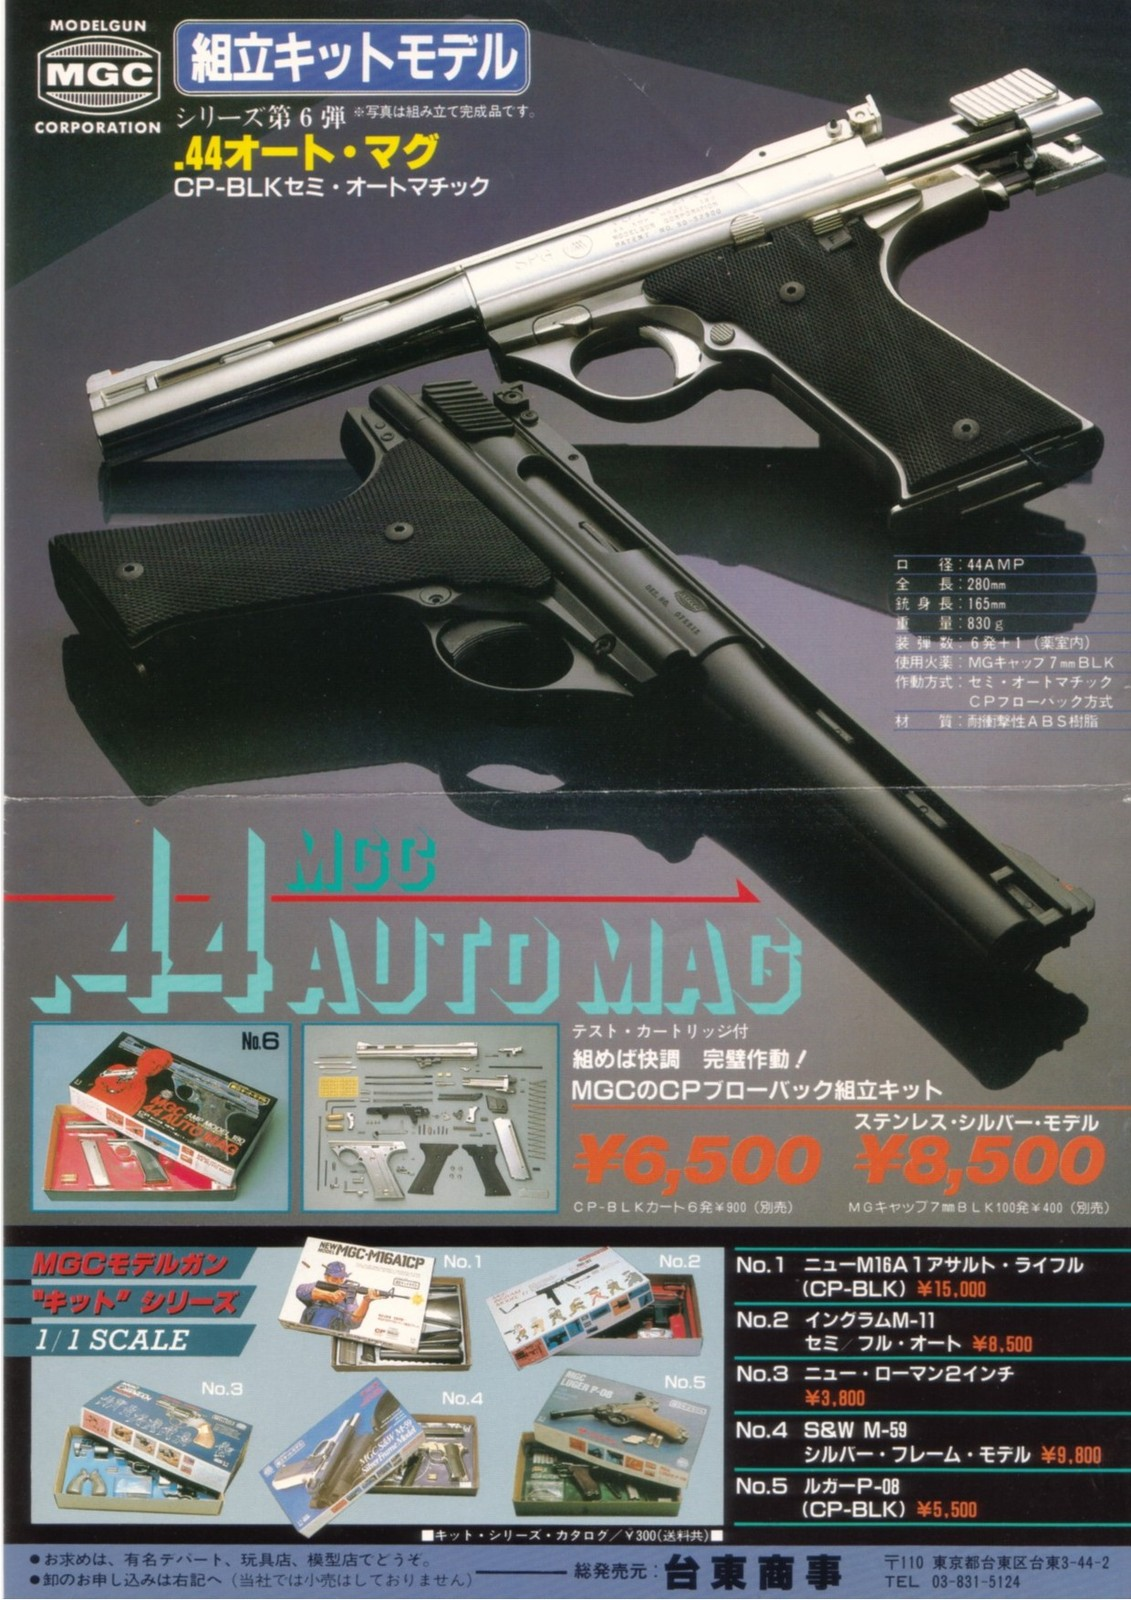 Automag